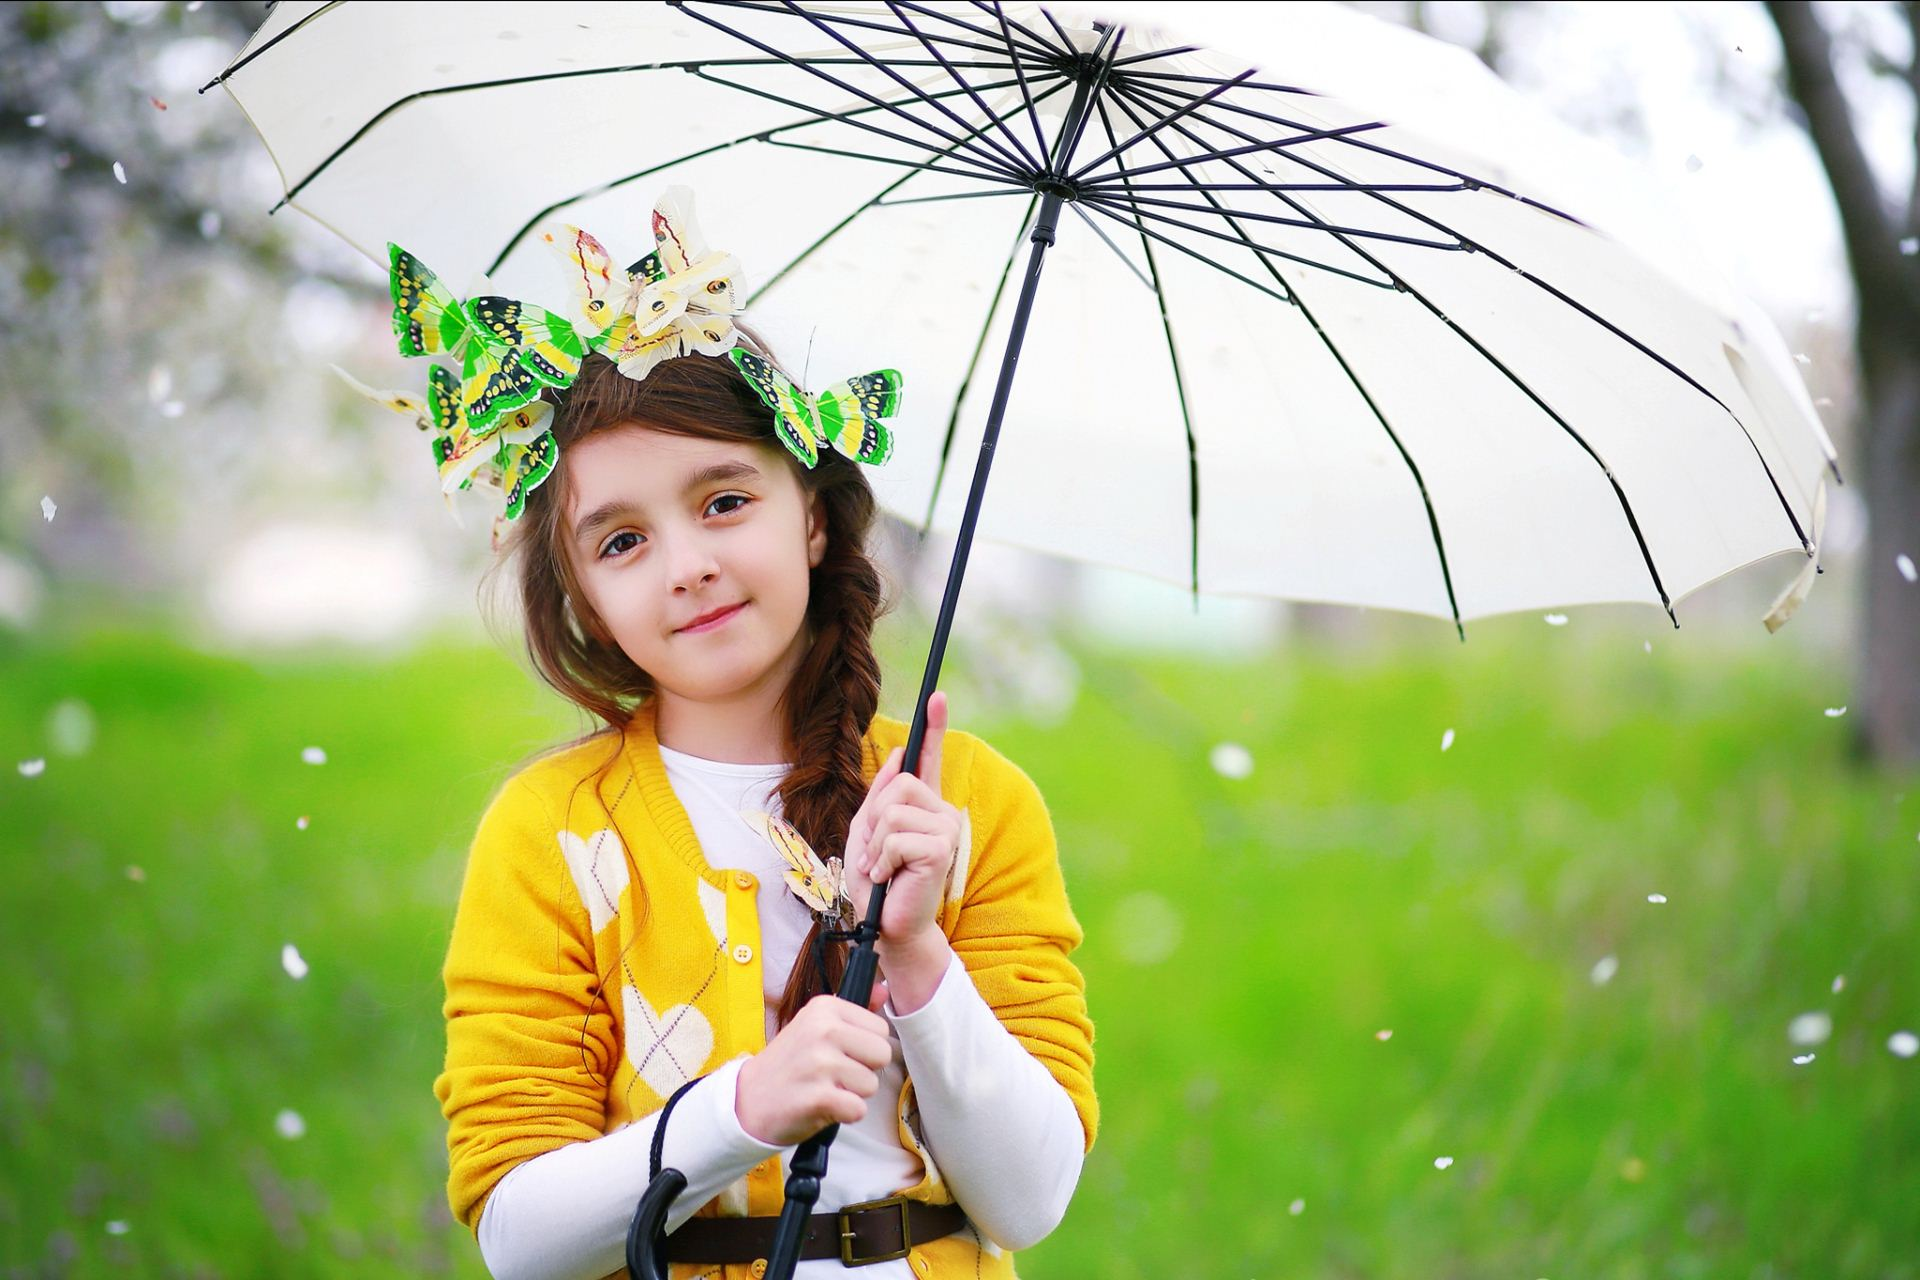 Cute Baby Girls Wallpapers HD Pictures – One HD Wallpaper Pictures